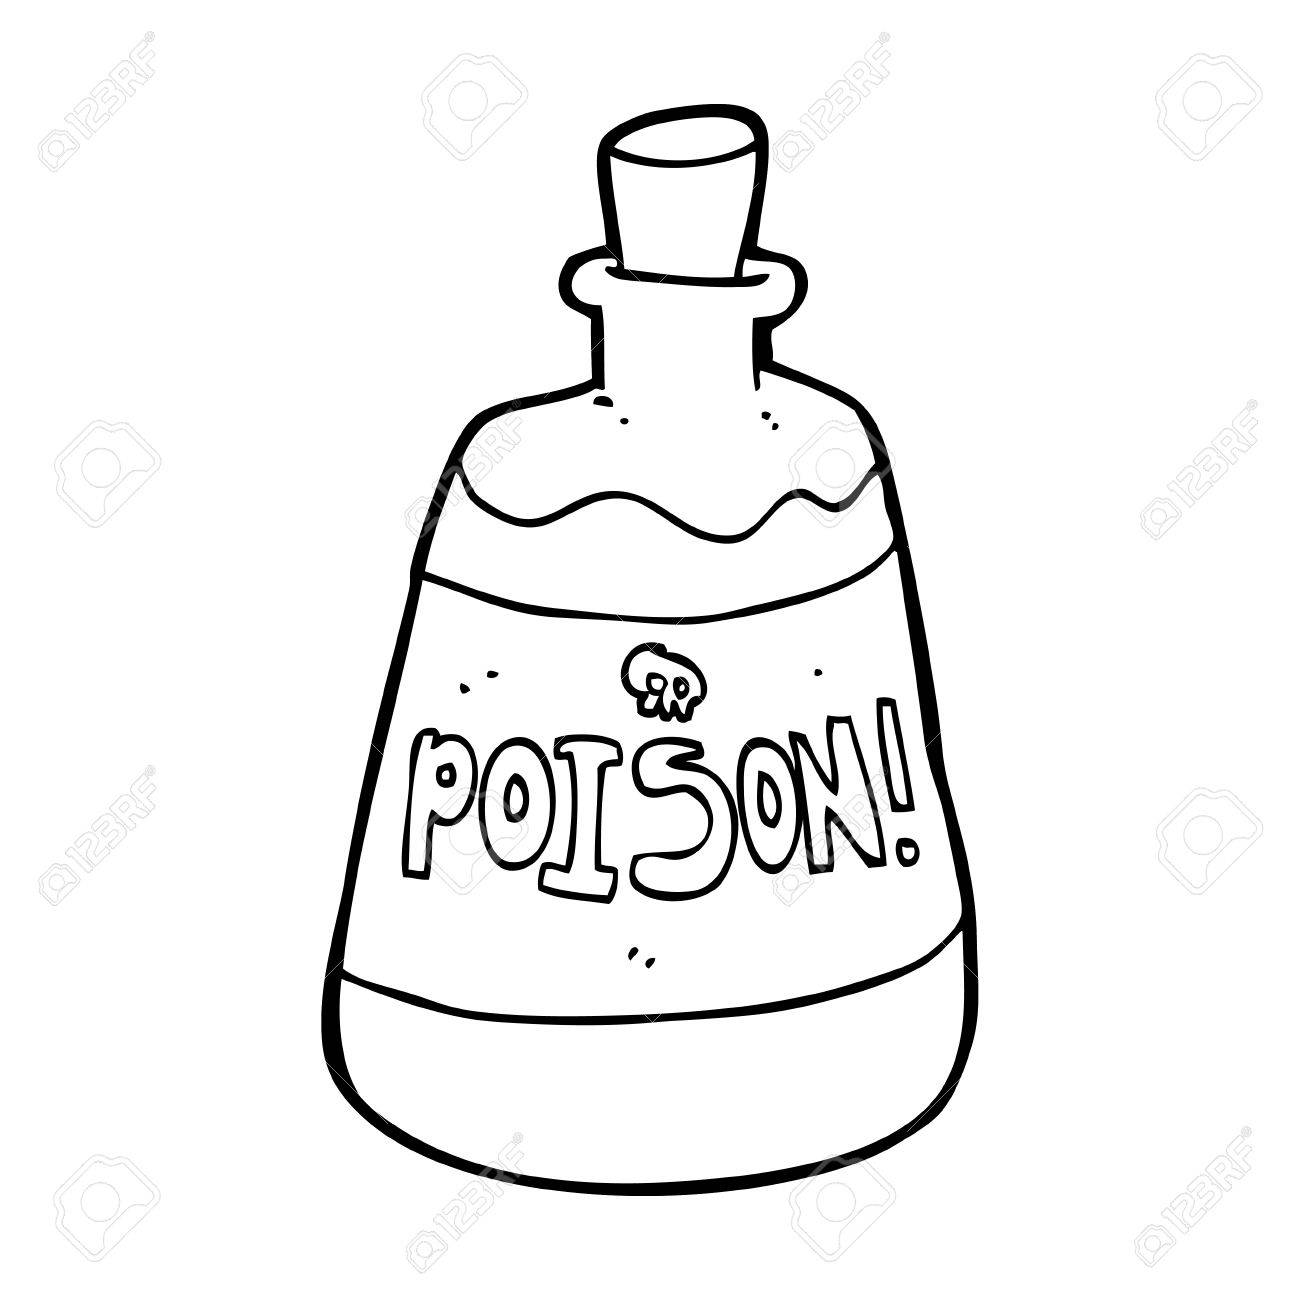 Cartoon Bottle Of Poison Royalty Free Cliparts, Vectors, And Stock ...